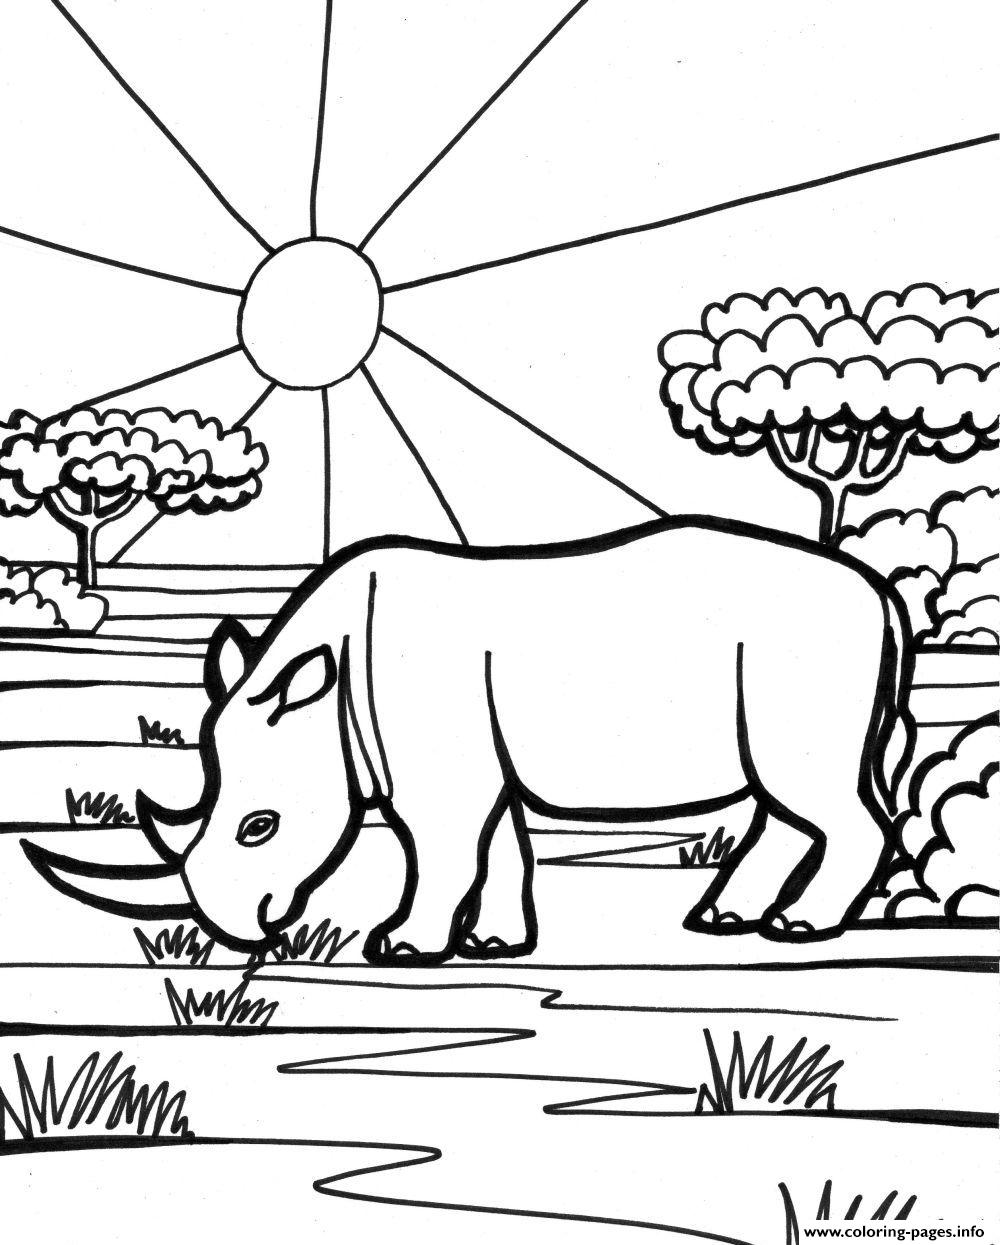 Rhino Free Animal S For Kids0897 Coloring Pages Printable